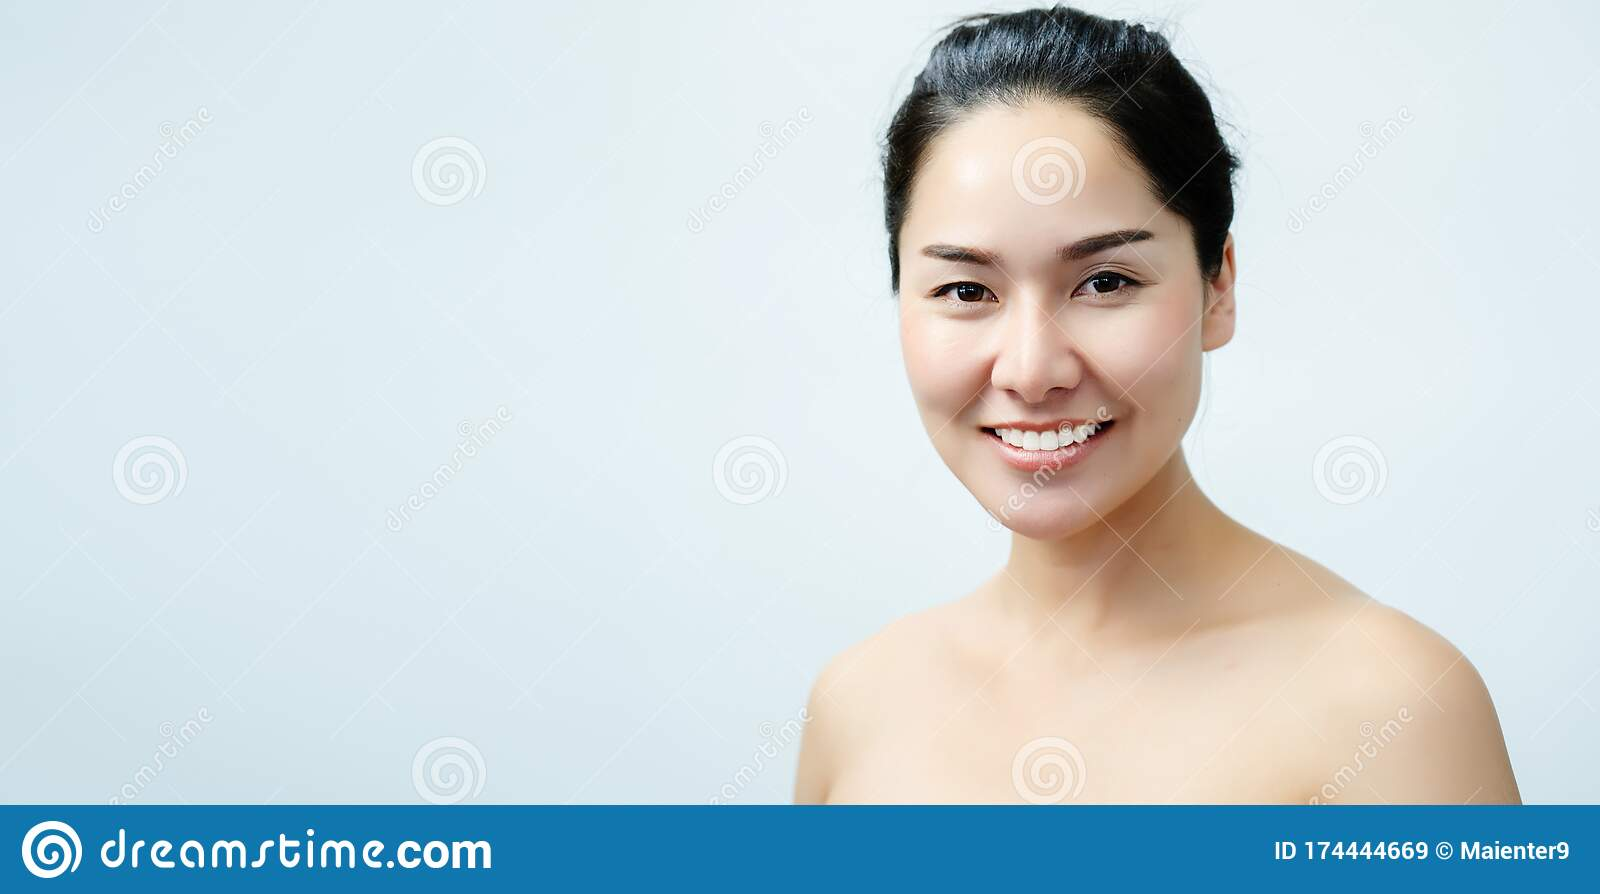 Fashion Model Beautiful Nude Girl In White Shirt Looking At The Stock Image - Image of caucasian